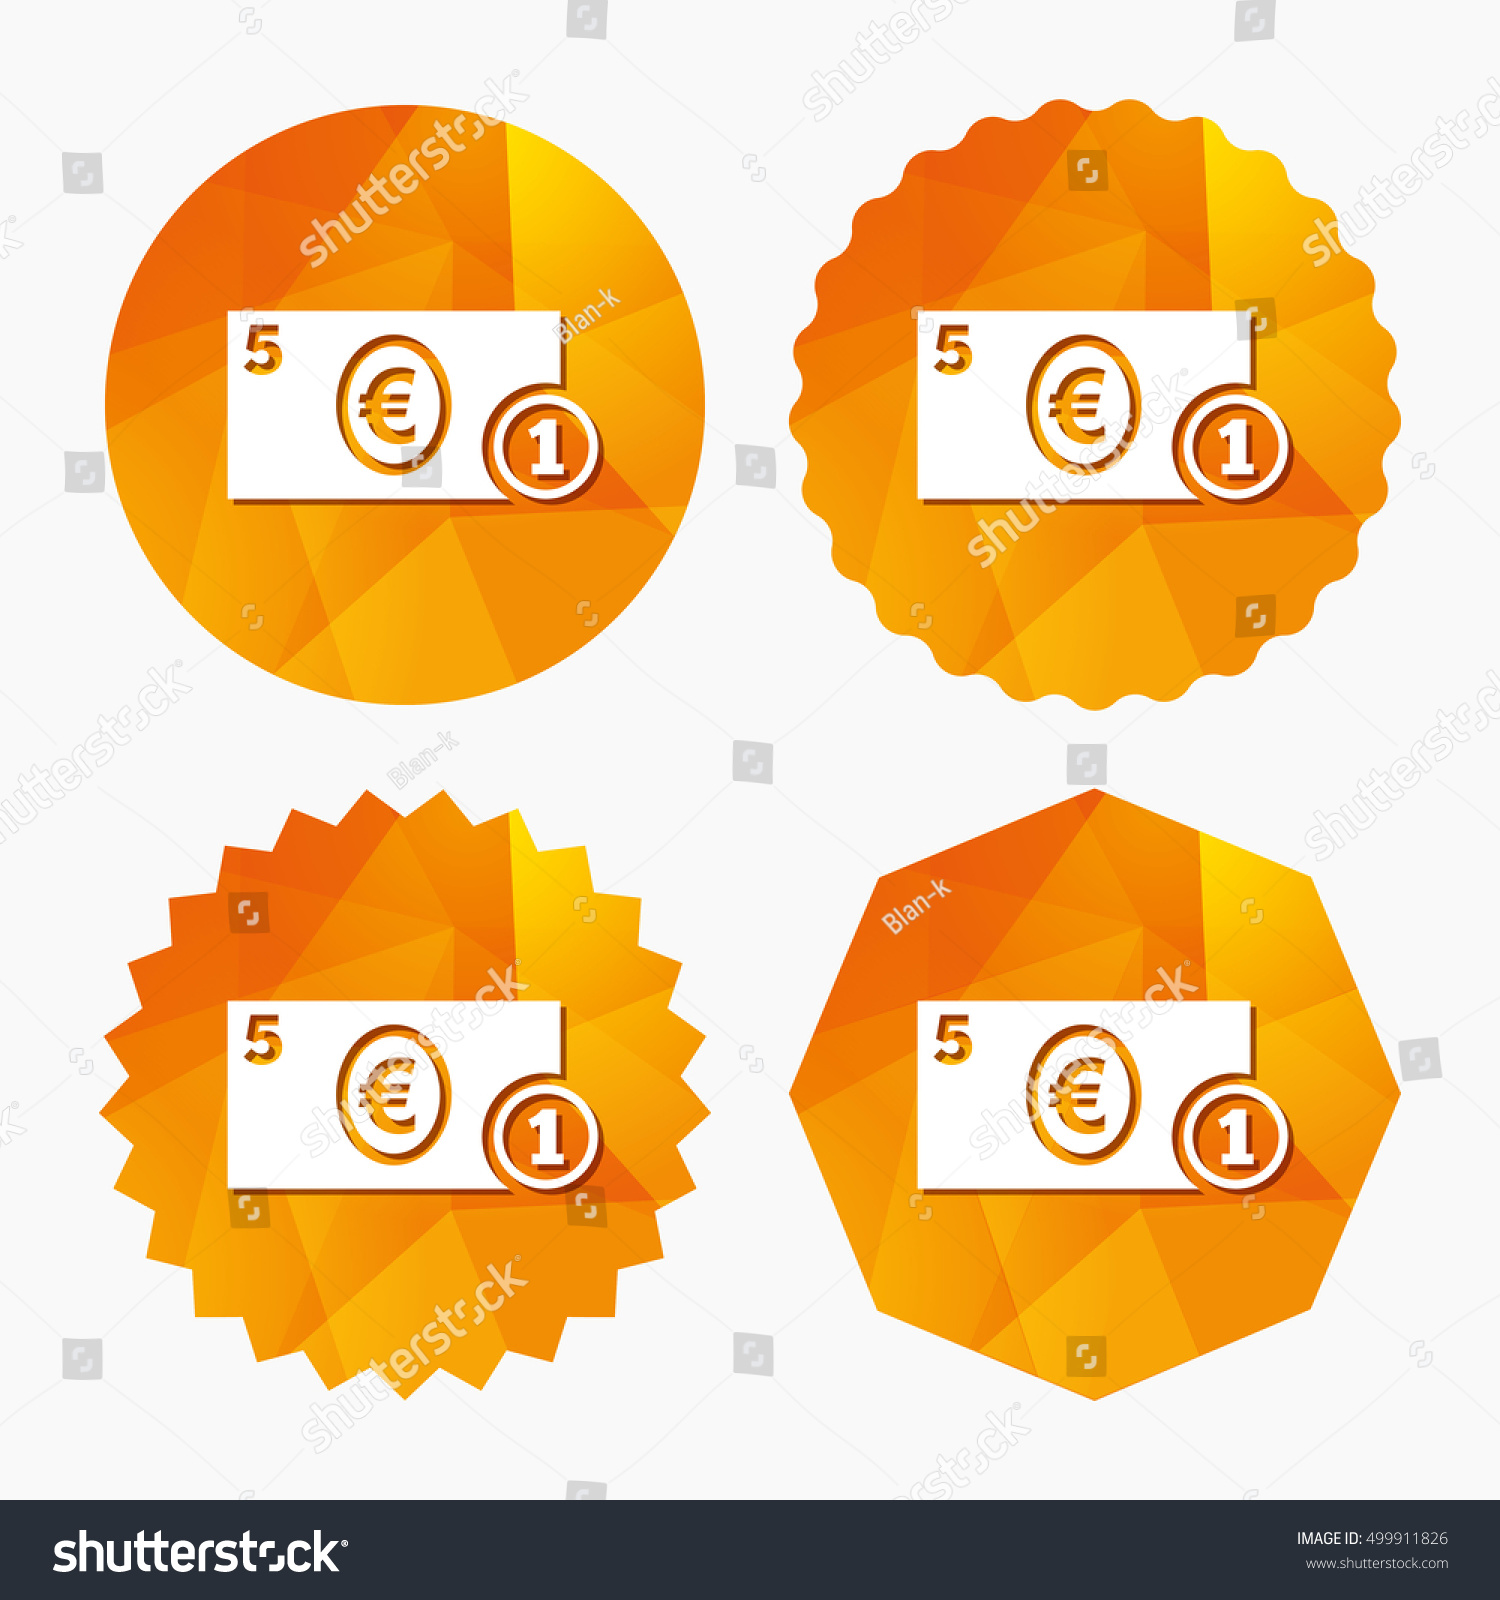 Cash sign icon euro money symbol stock vector 499911826 shutterstock cash sign icon euro money symbol eur coin and paper money triangular low buycottarizona Gallery